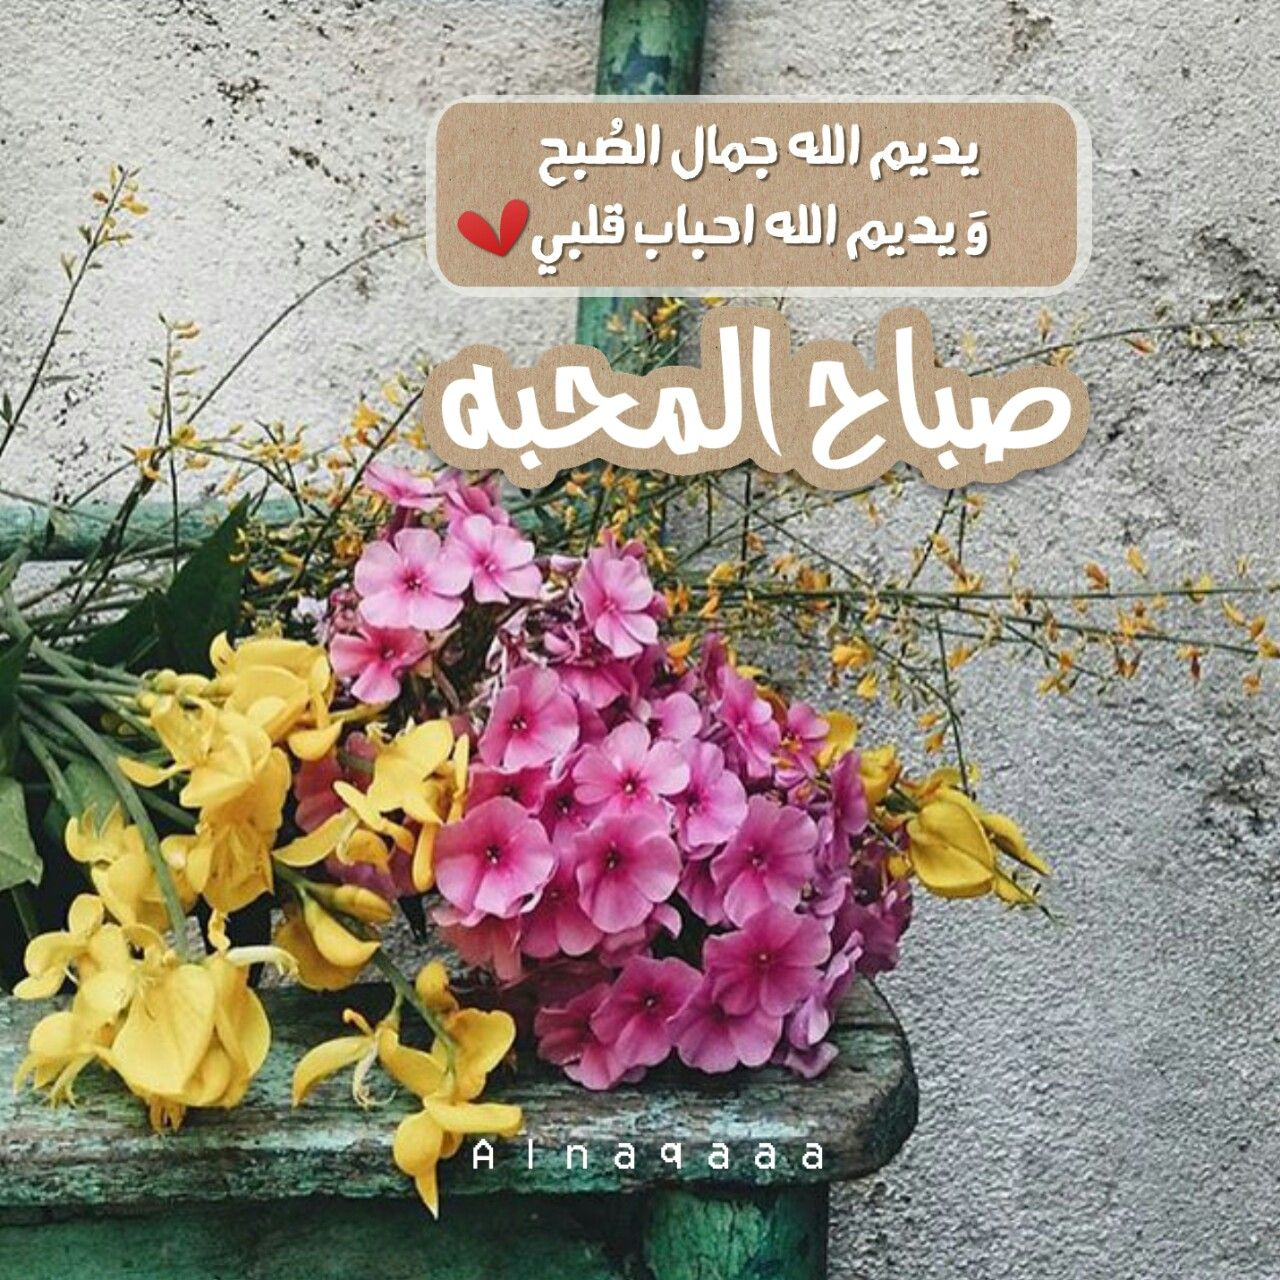 كويتية وكل ما انشره من تصميمي Beautiful Morning Messages Good Morning Arabic Good Morning Cards